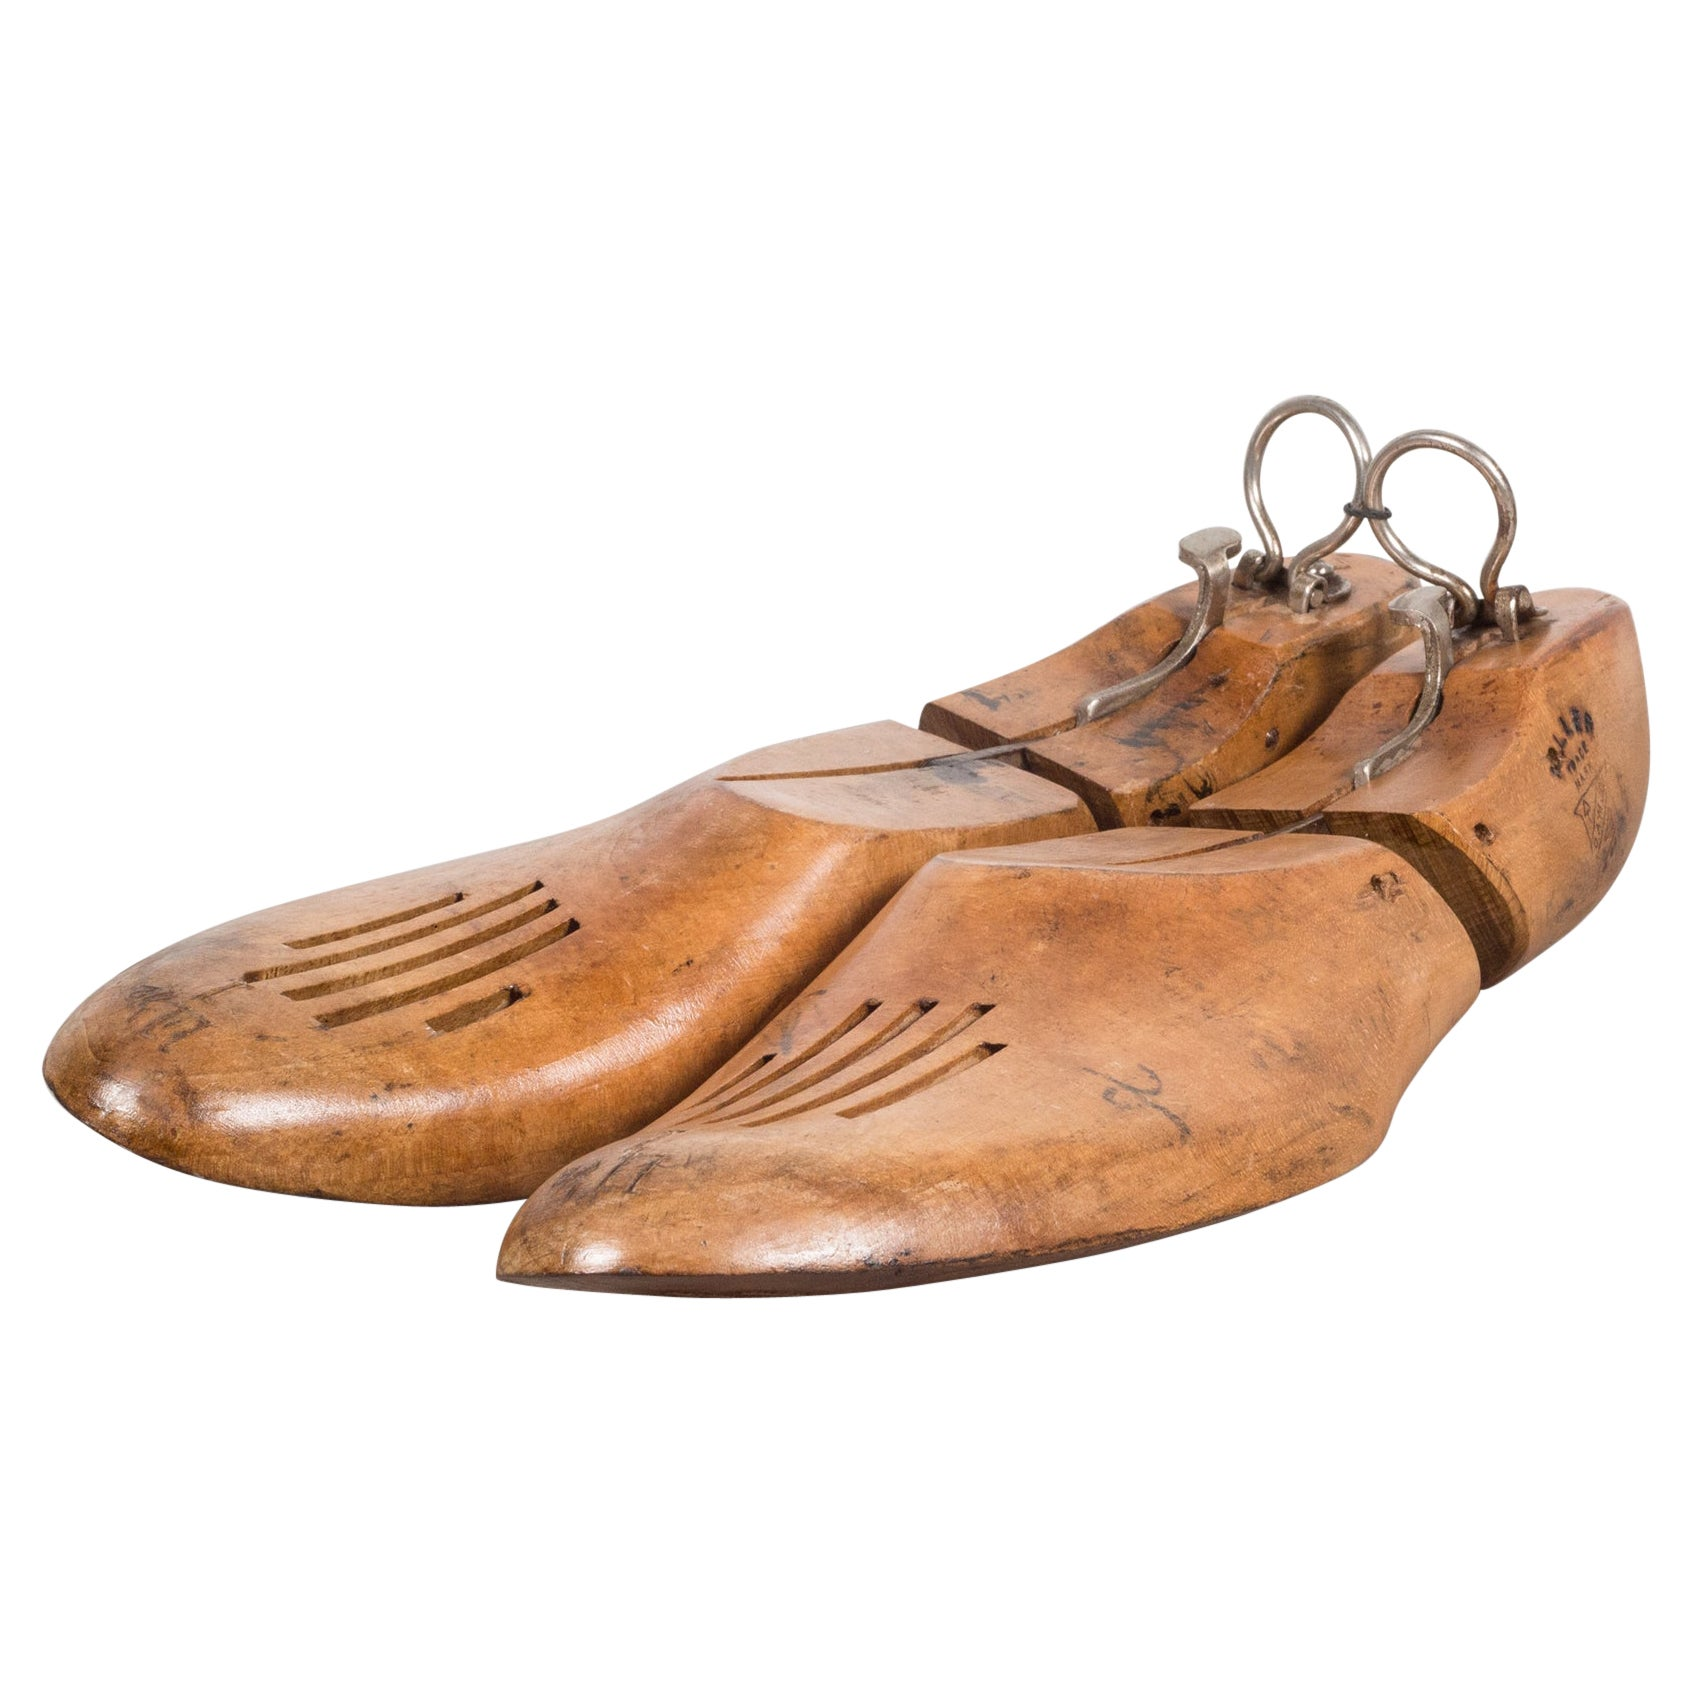 Antique Wooden Shoe Forms with Handles c.1920